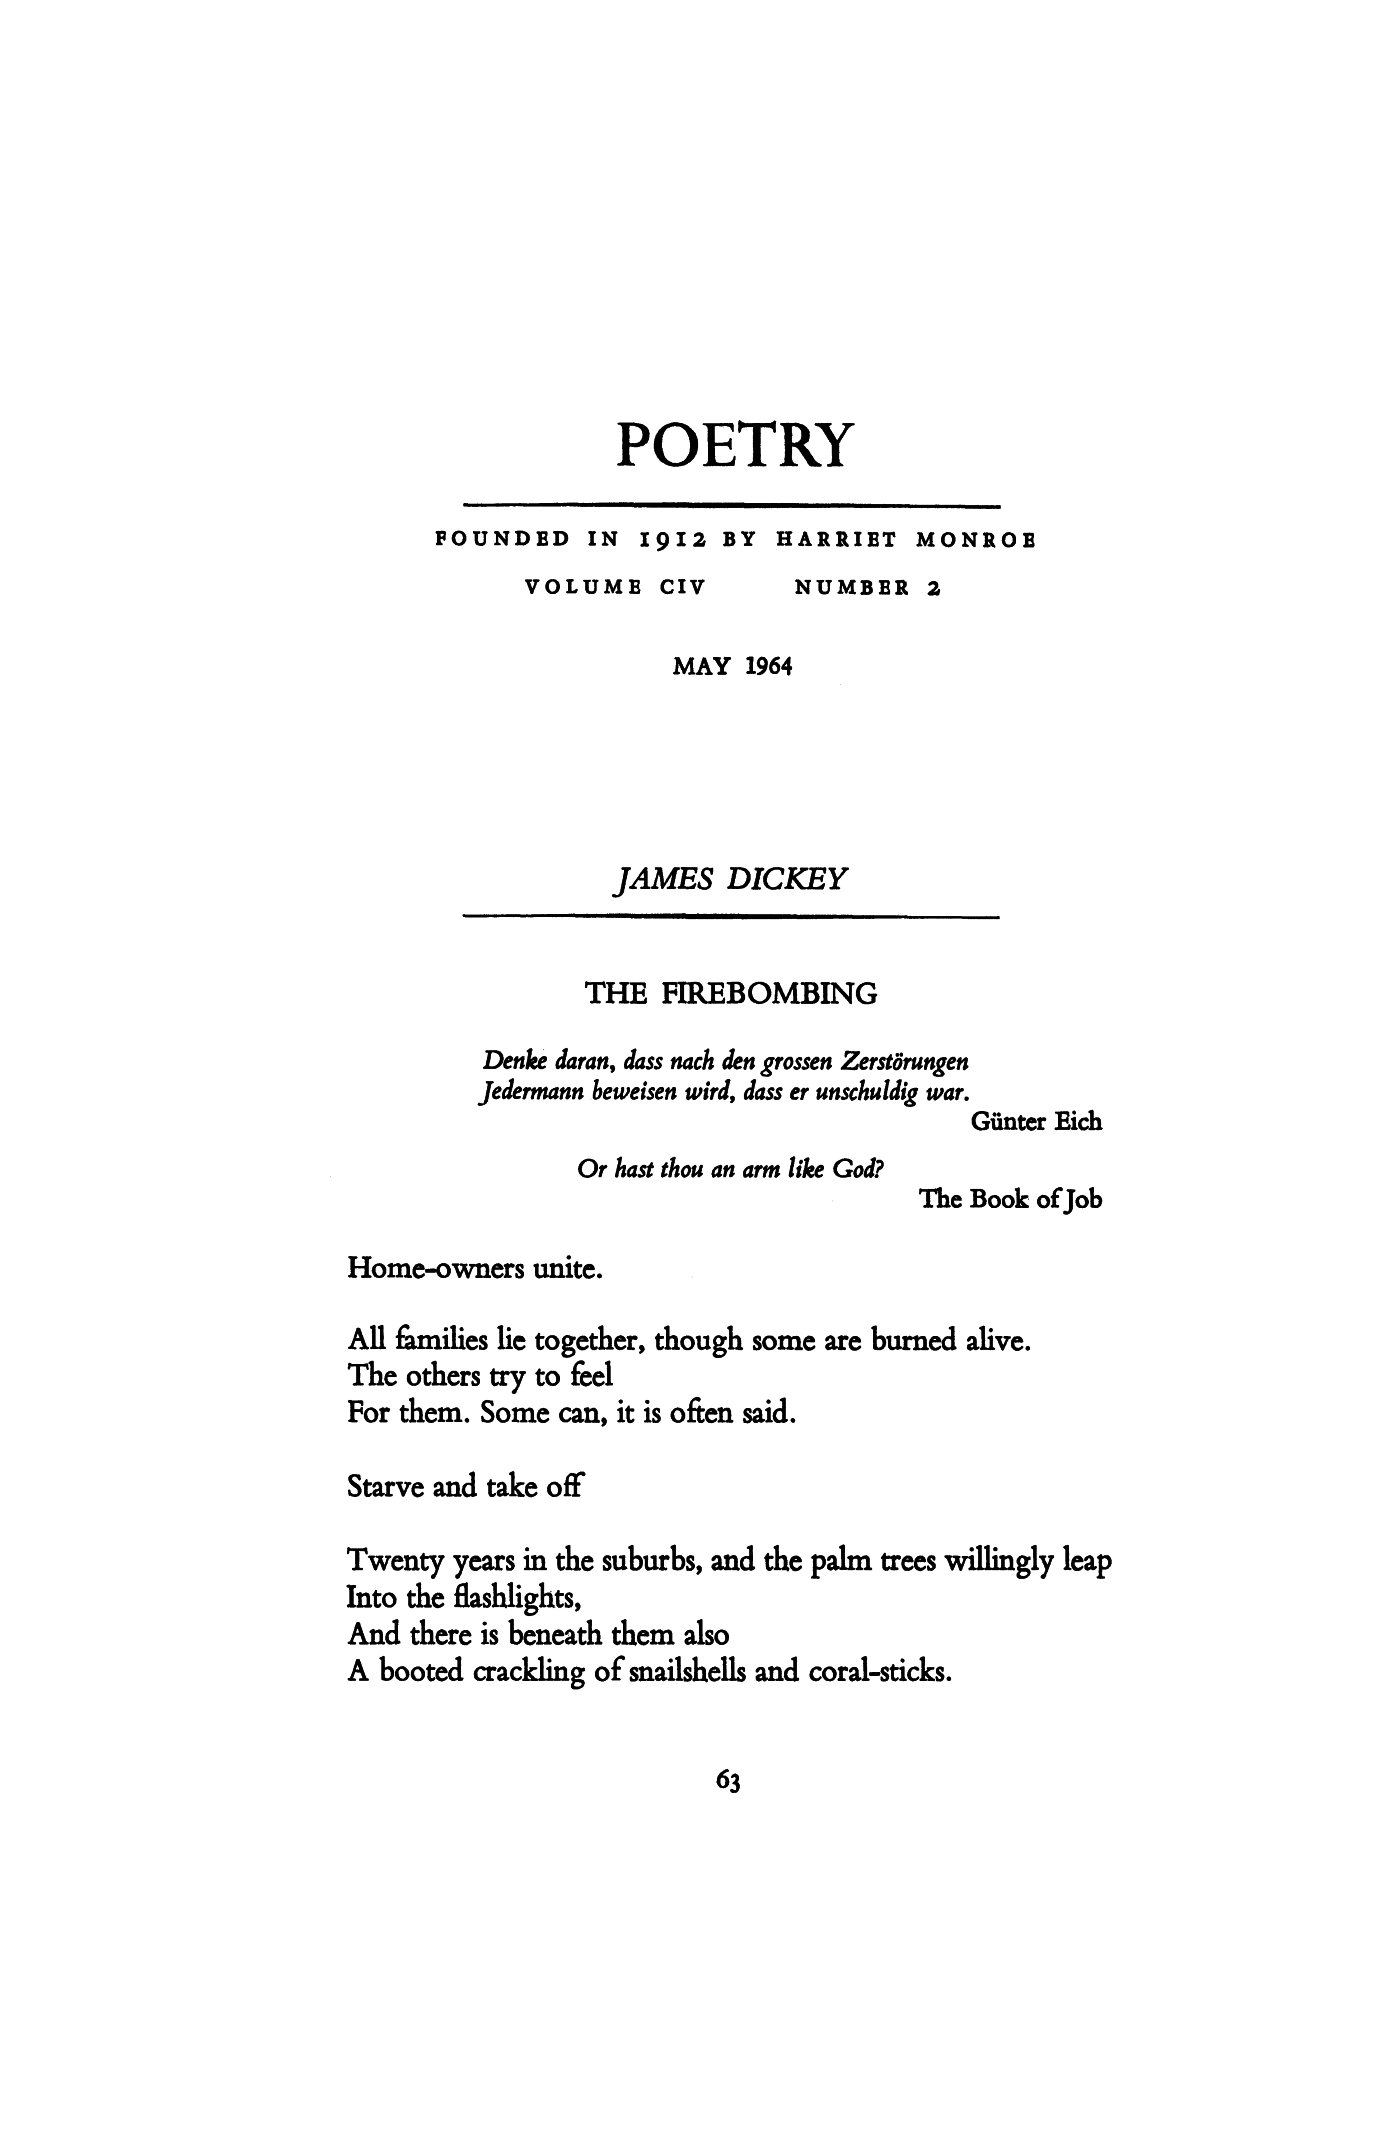 James Dickey Poems 5